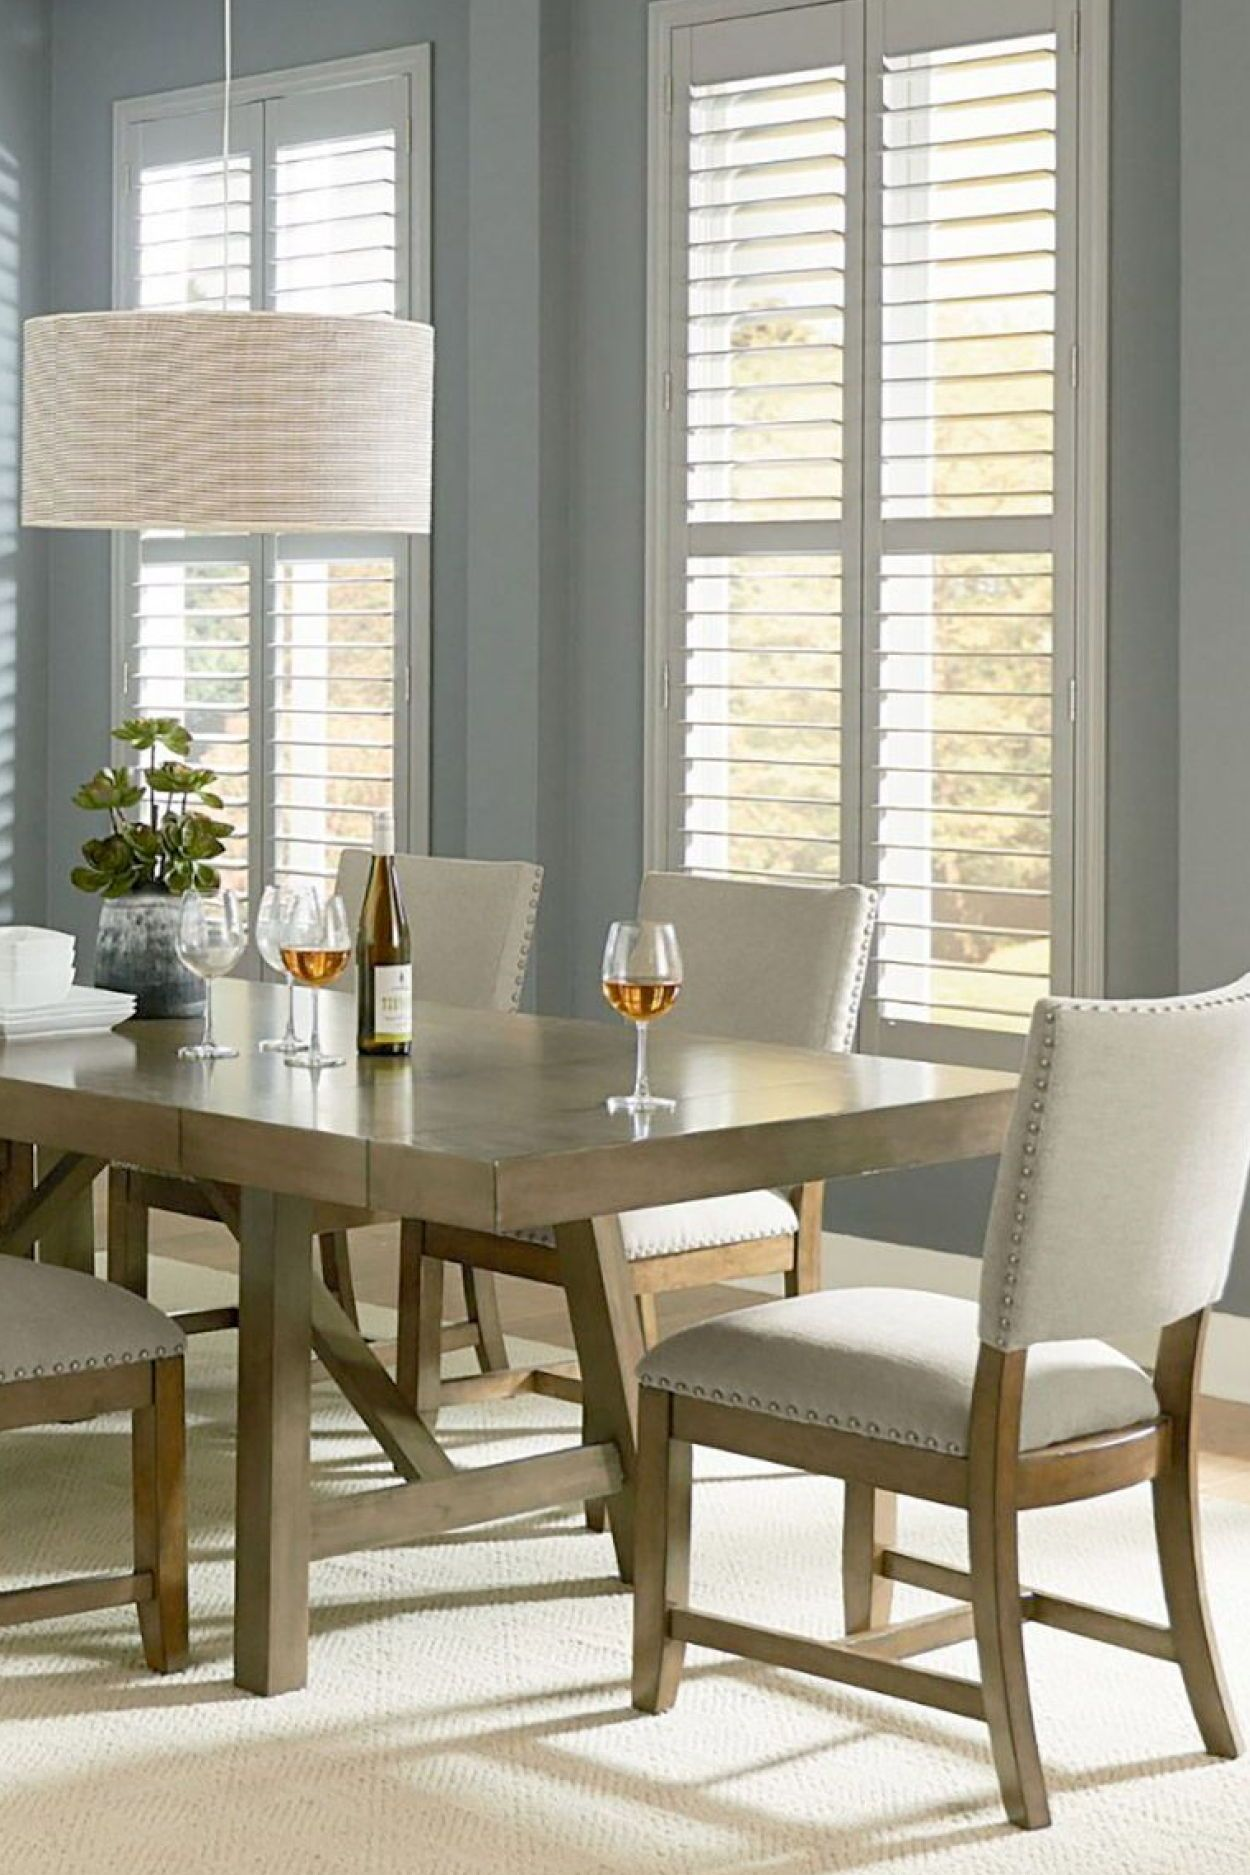 omaha 7 piece dining set the table features an impressive